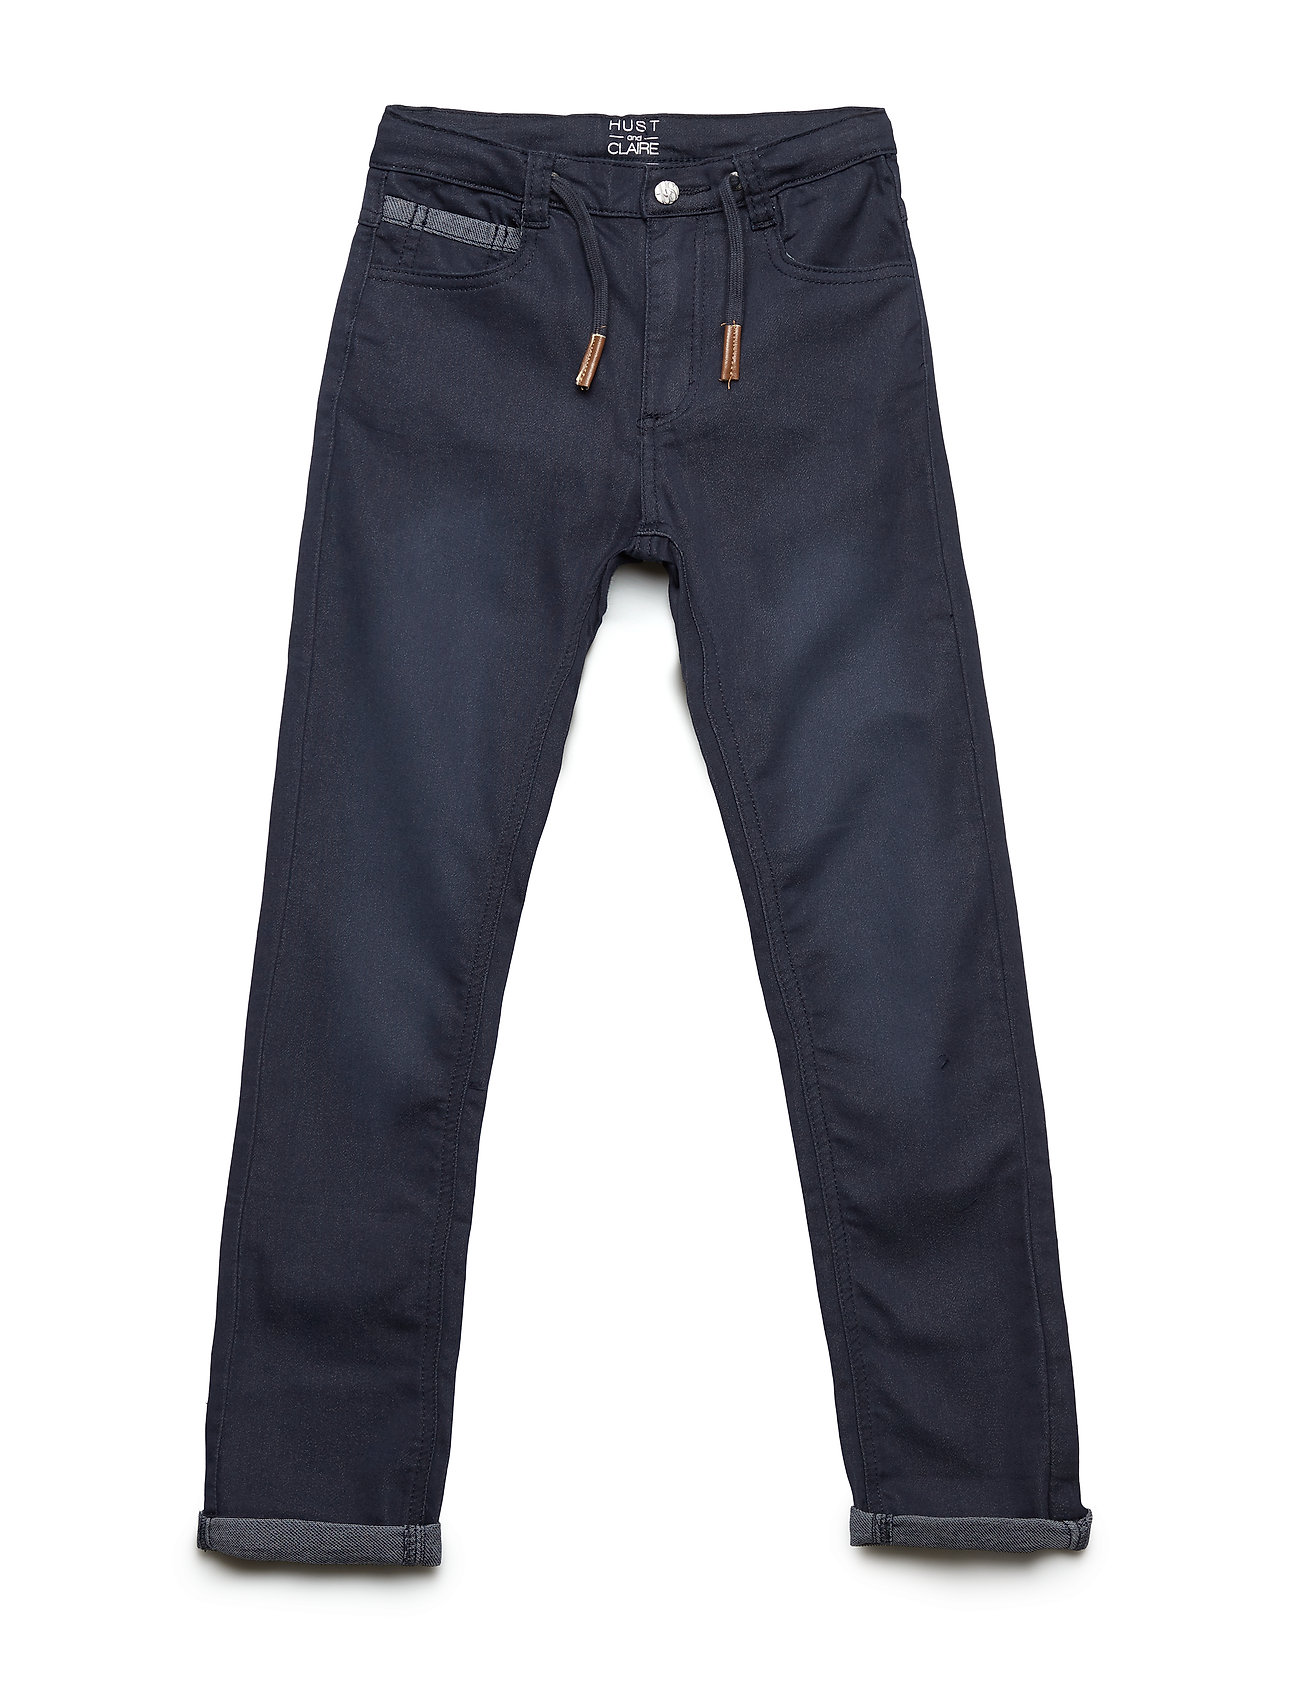 Image of Tiga - Trousers (3123580401)